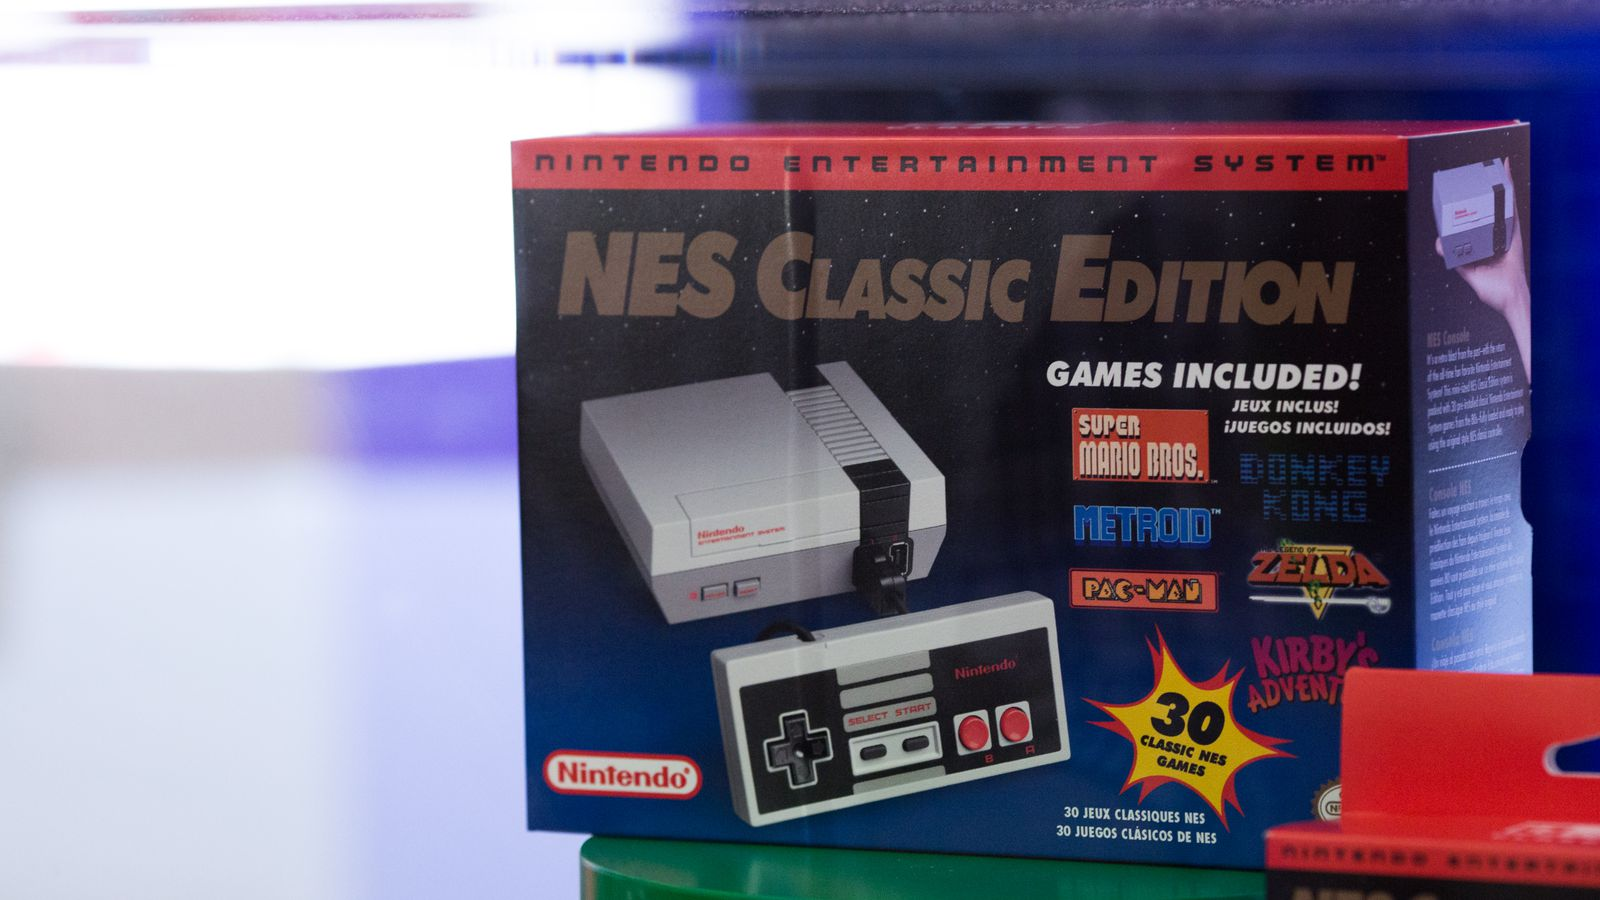 Nintendo's NES Classic will be available at Best Buy stores Monday morning